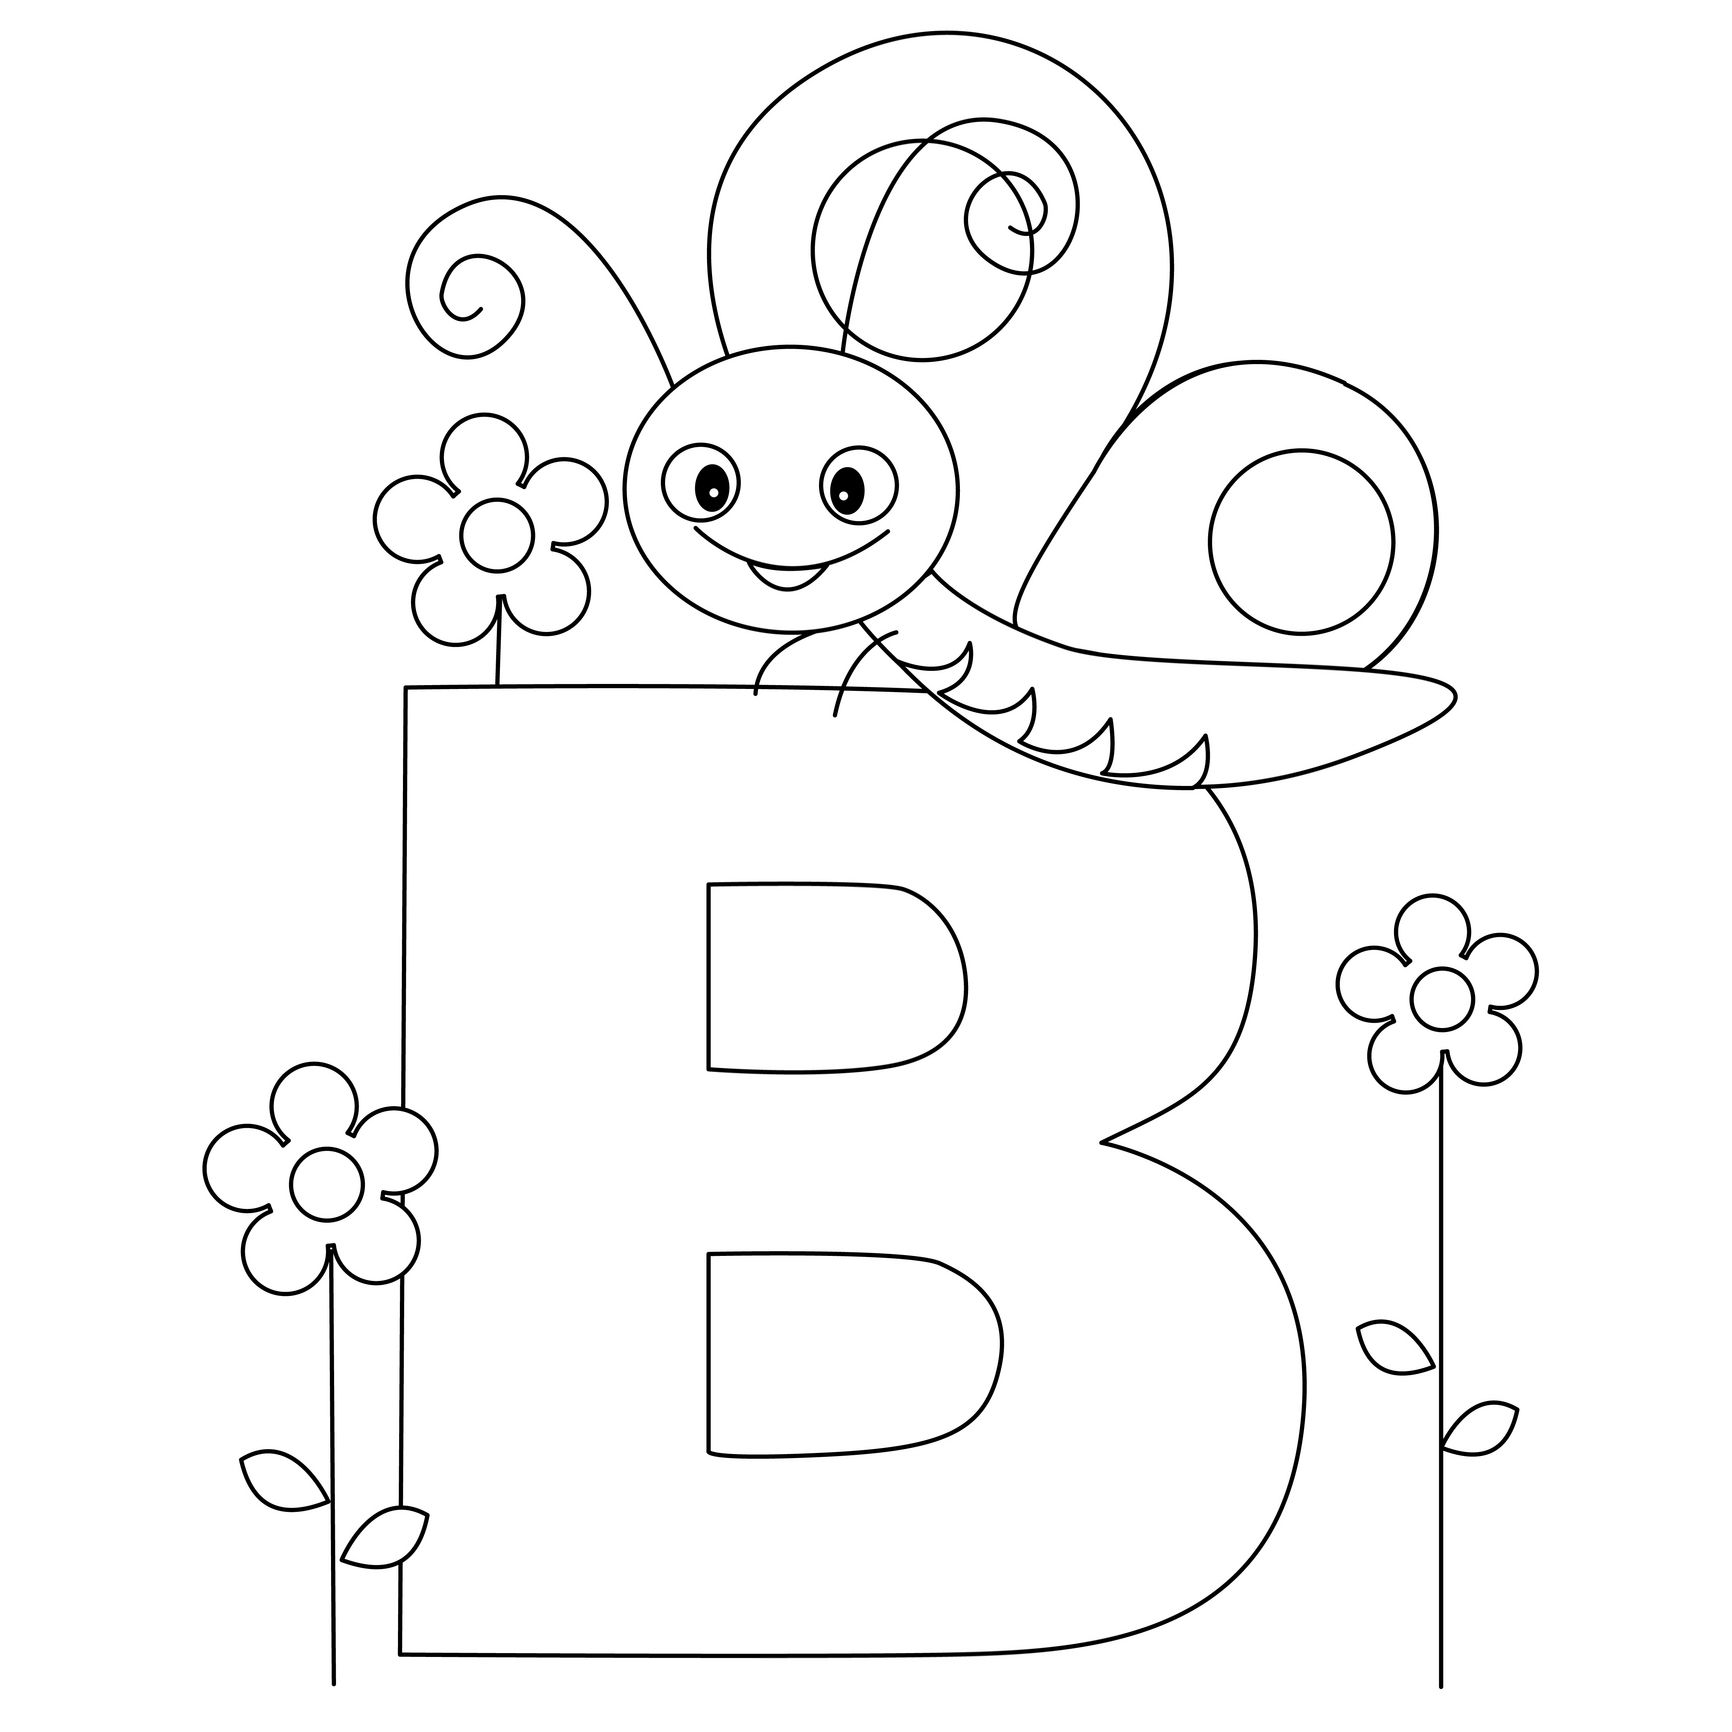 b words coloring pages - photo #31